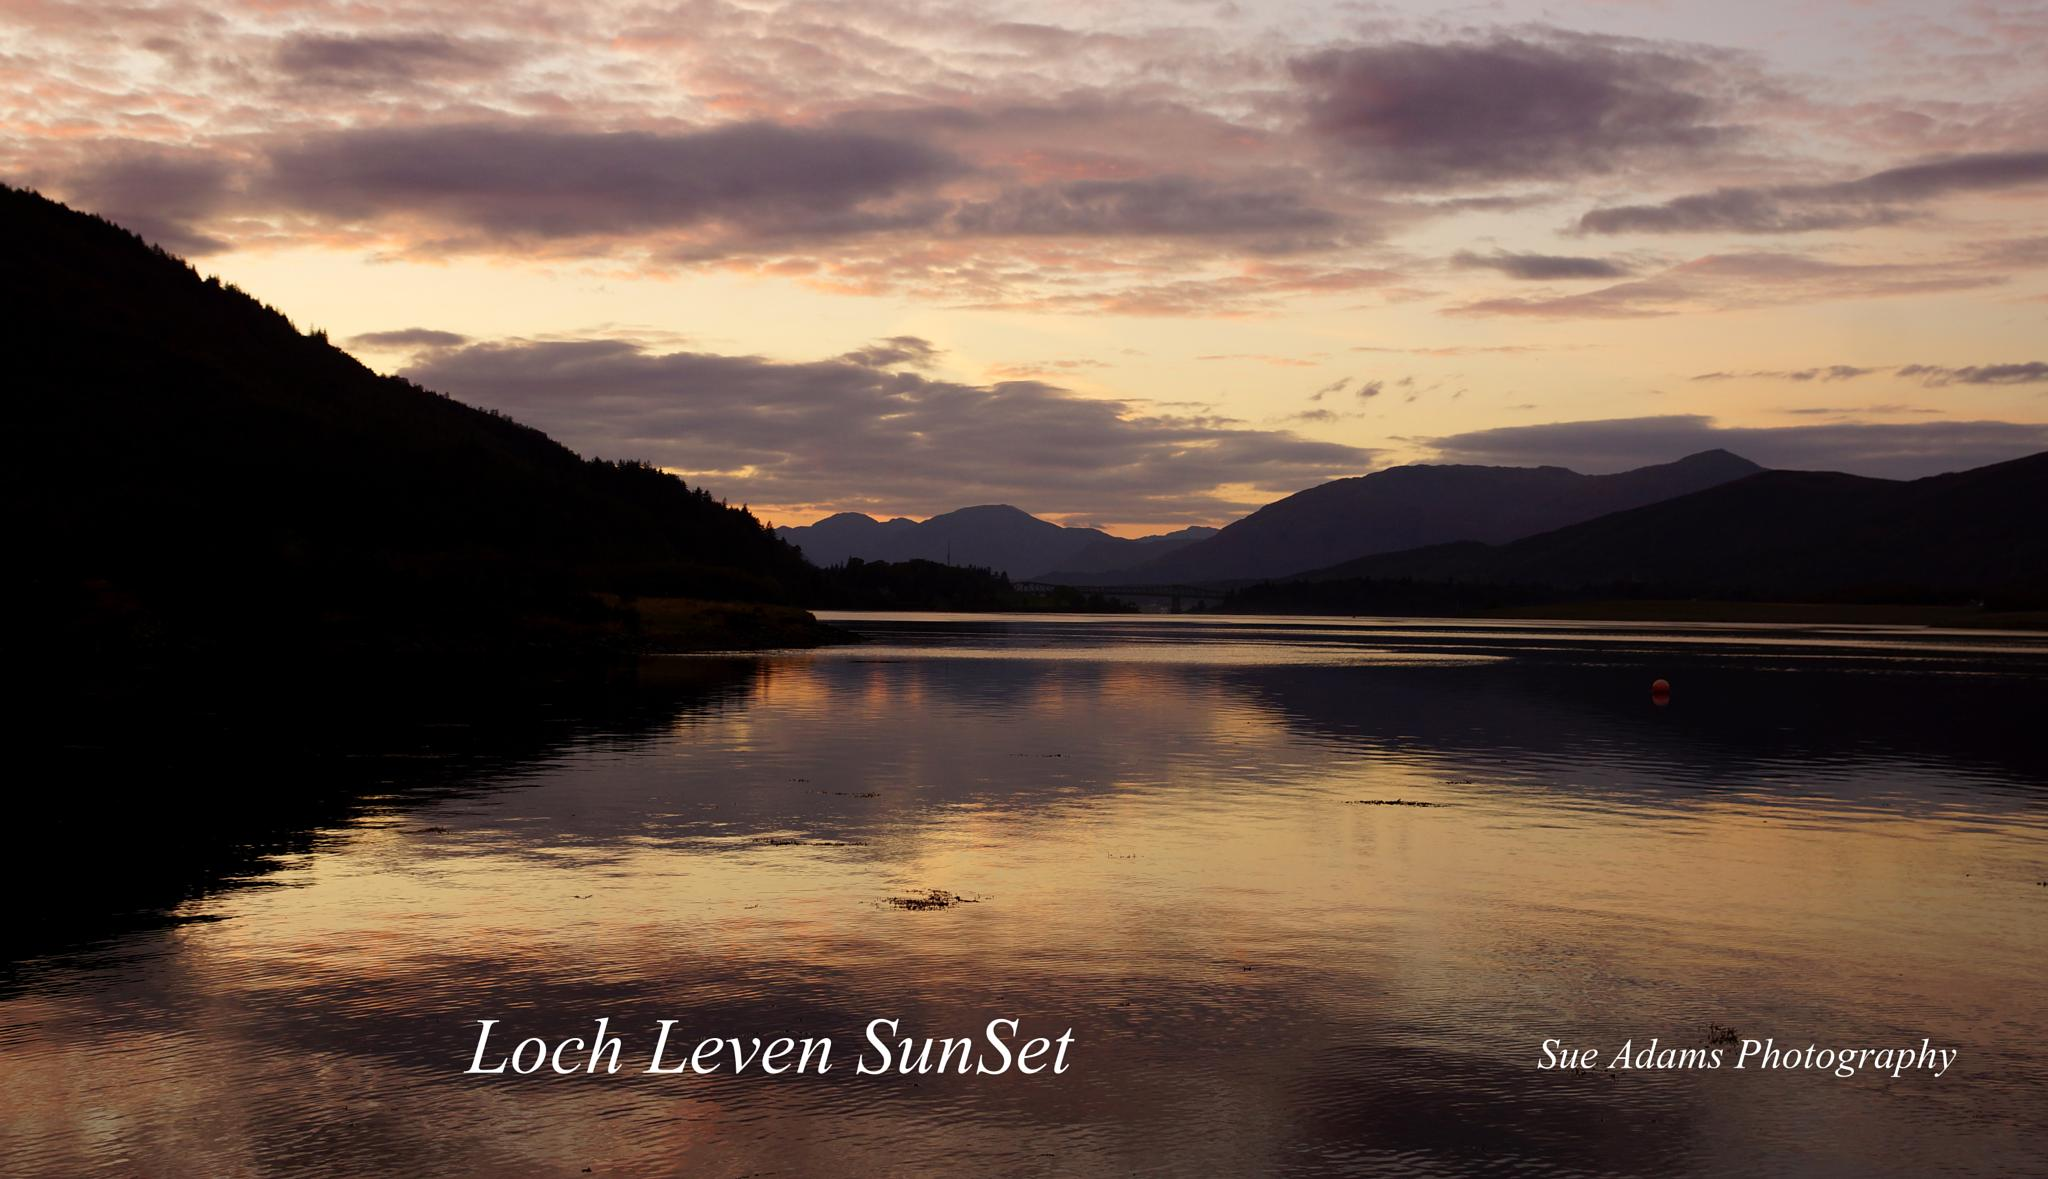 Loch Leven SunSet different day by Sue Adams Photography